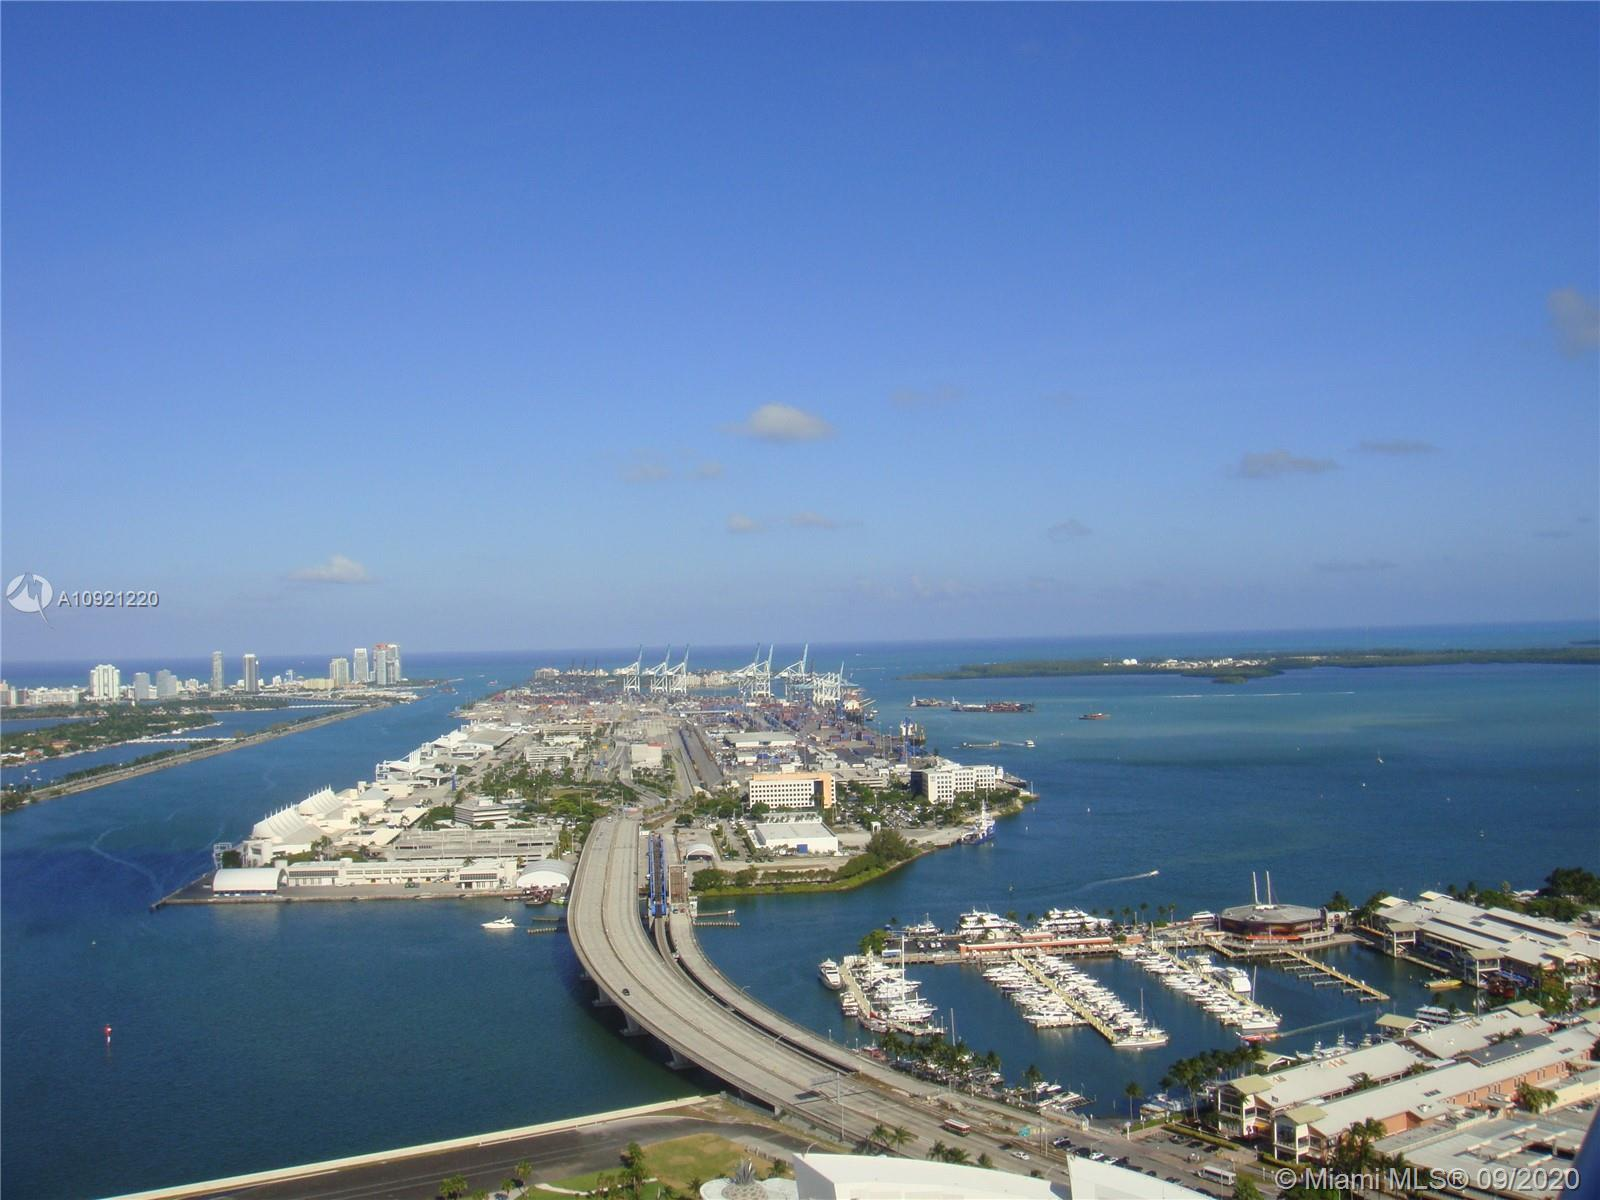 Gorgeous 2 Bedroom / 2 Bathroom Condo in the Heart of Miami! Unit Offers Amazing Views of Miami on B